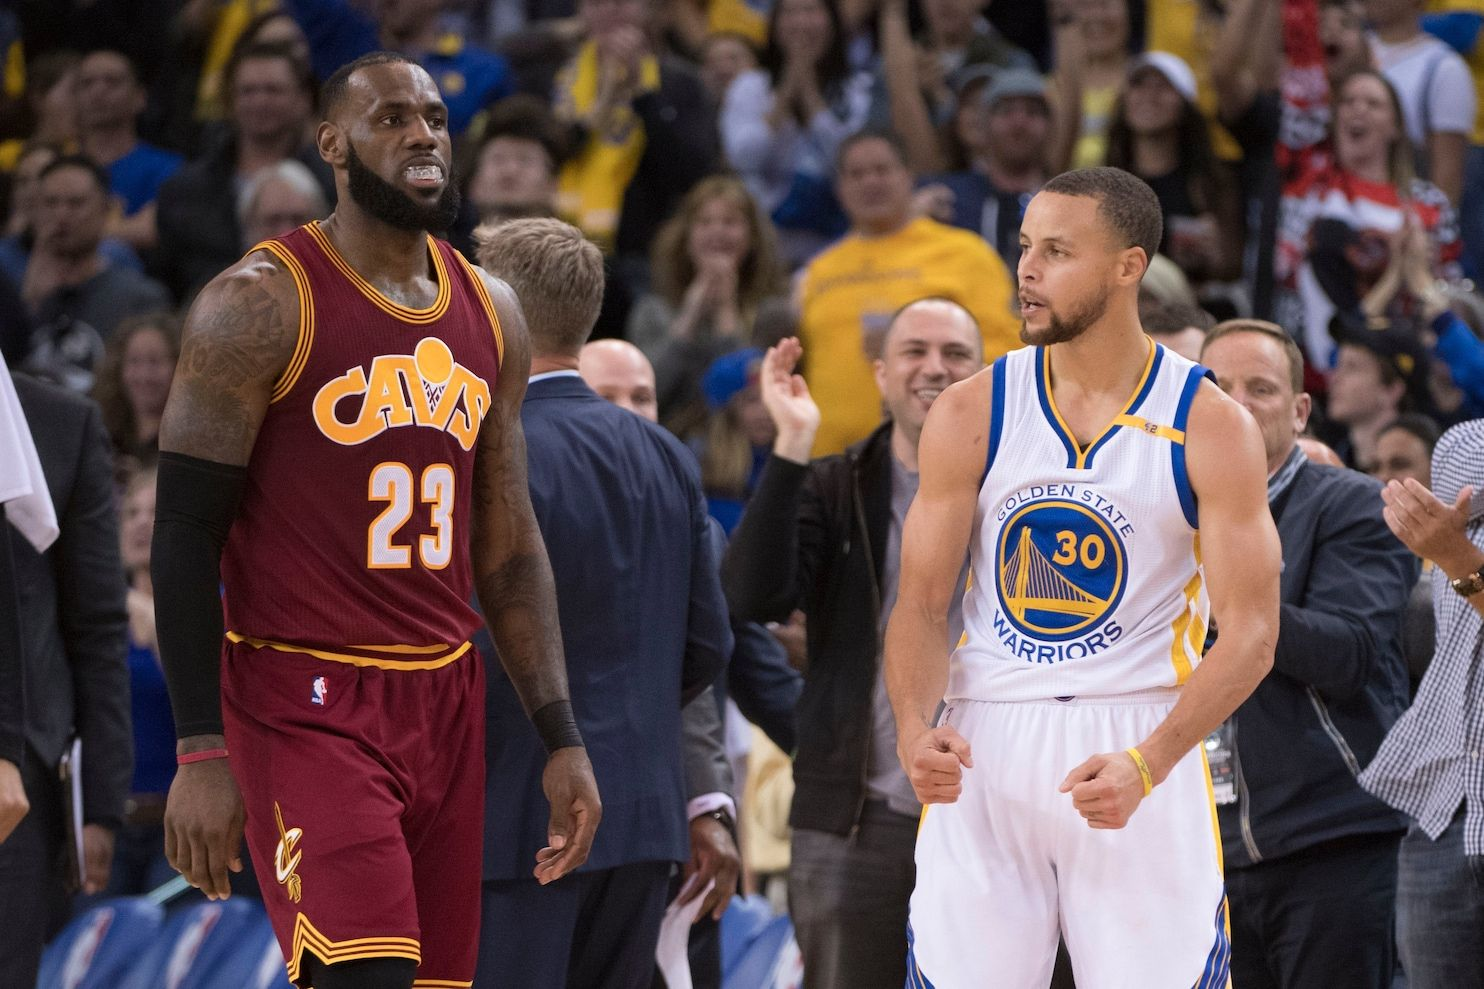 The Cavaliers will face the Warriors in the 2017 NBA finals. And 2018. And 2019 … - Washington Post